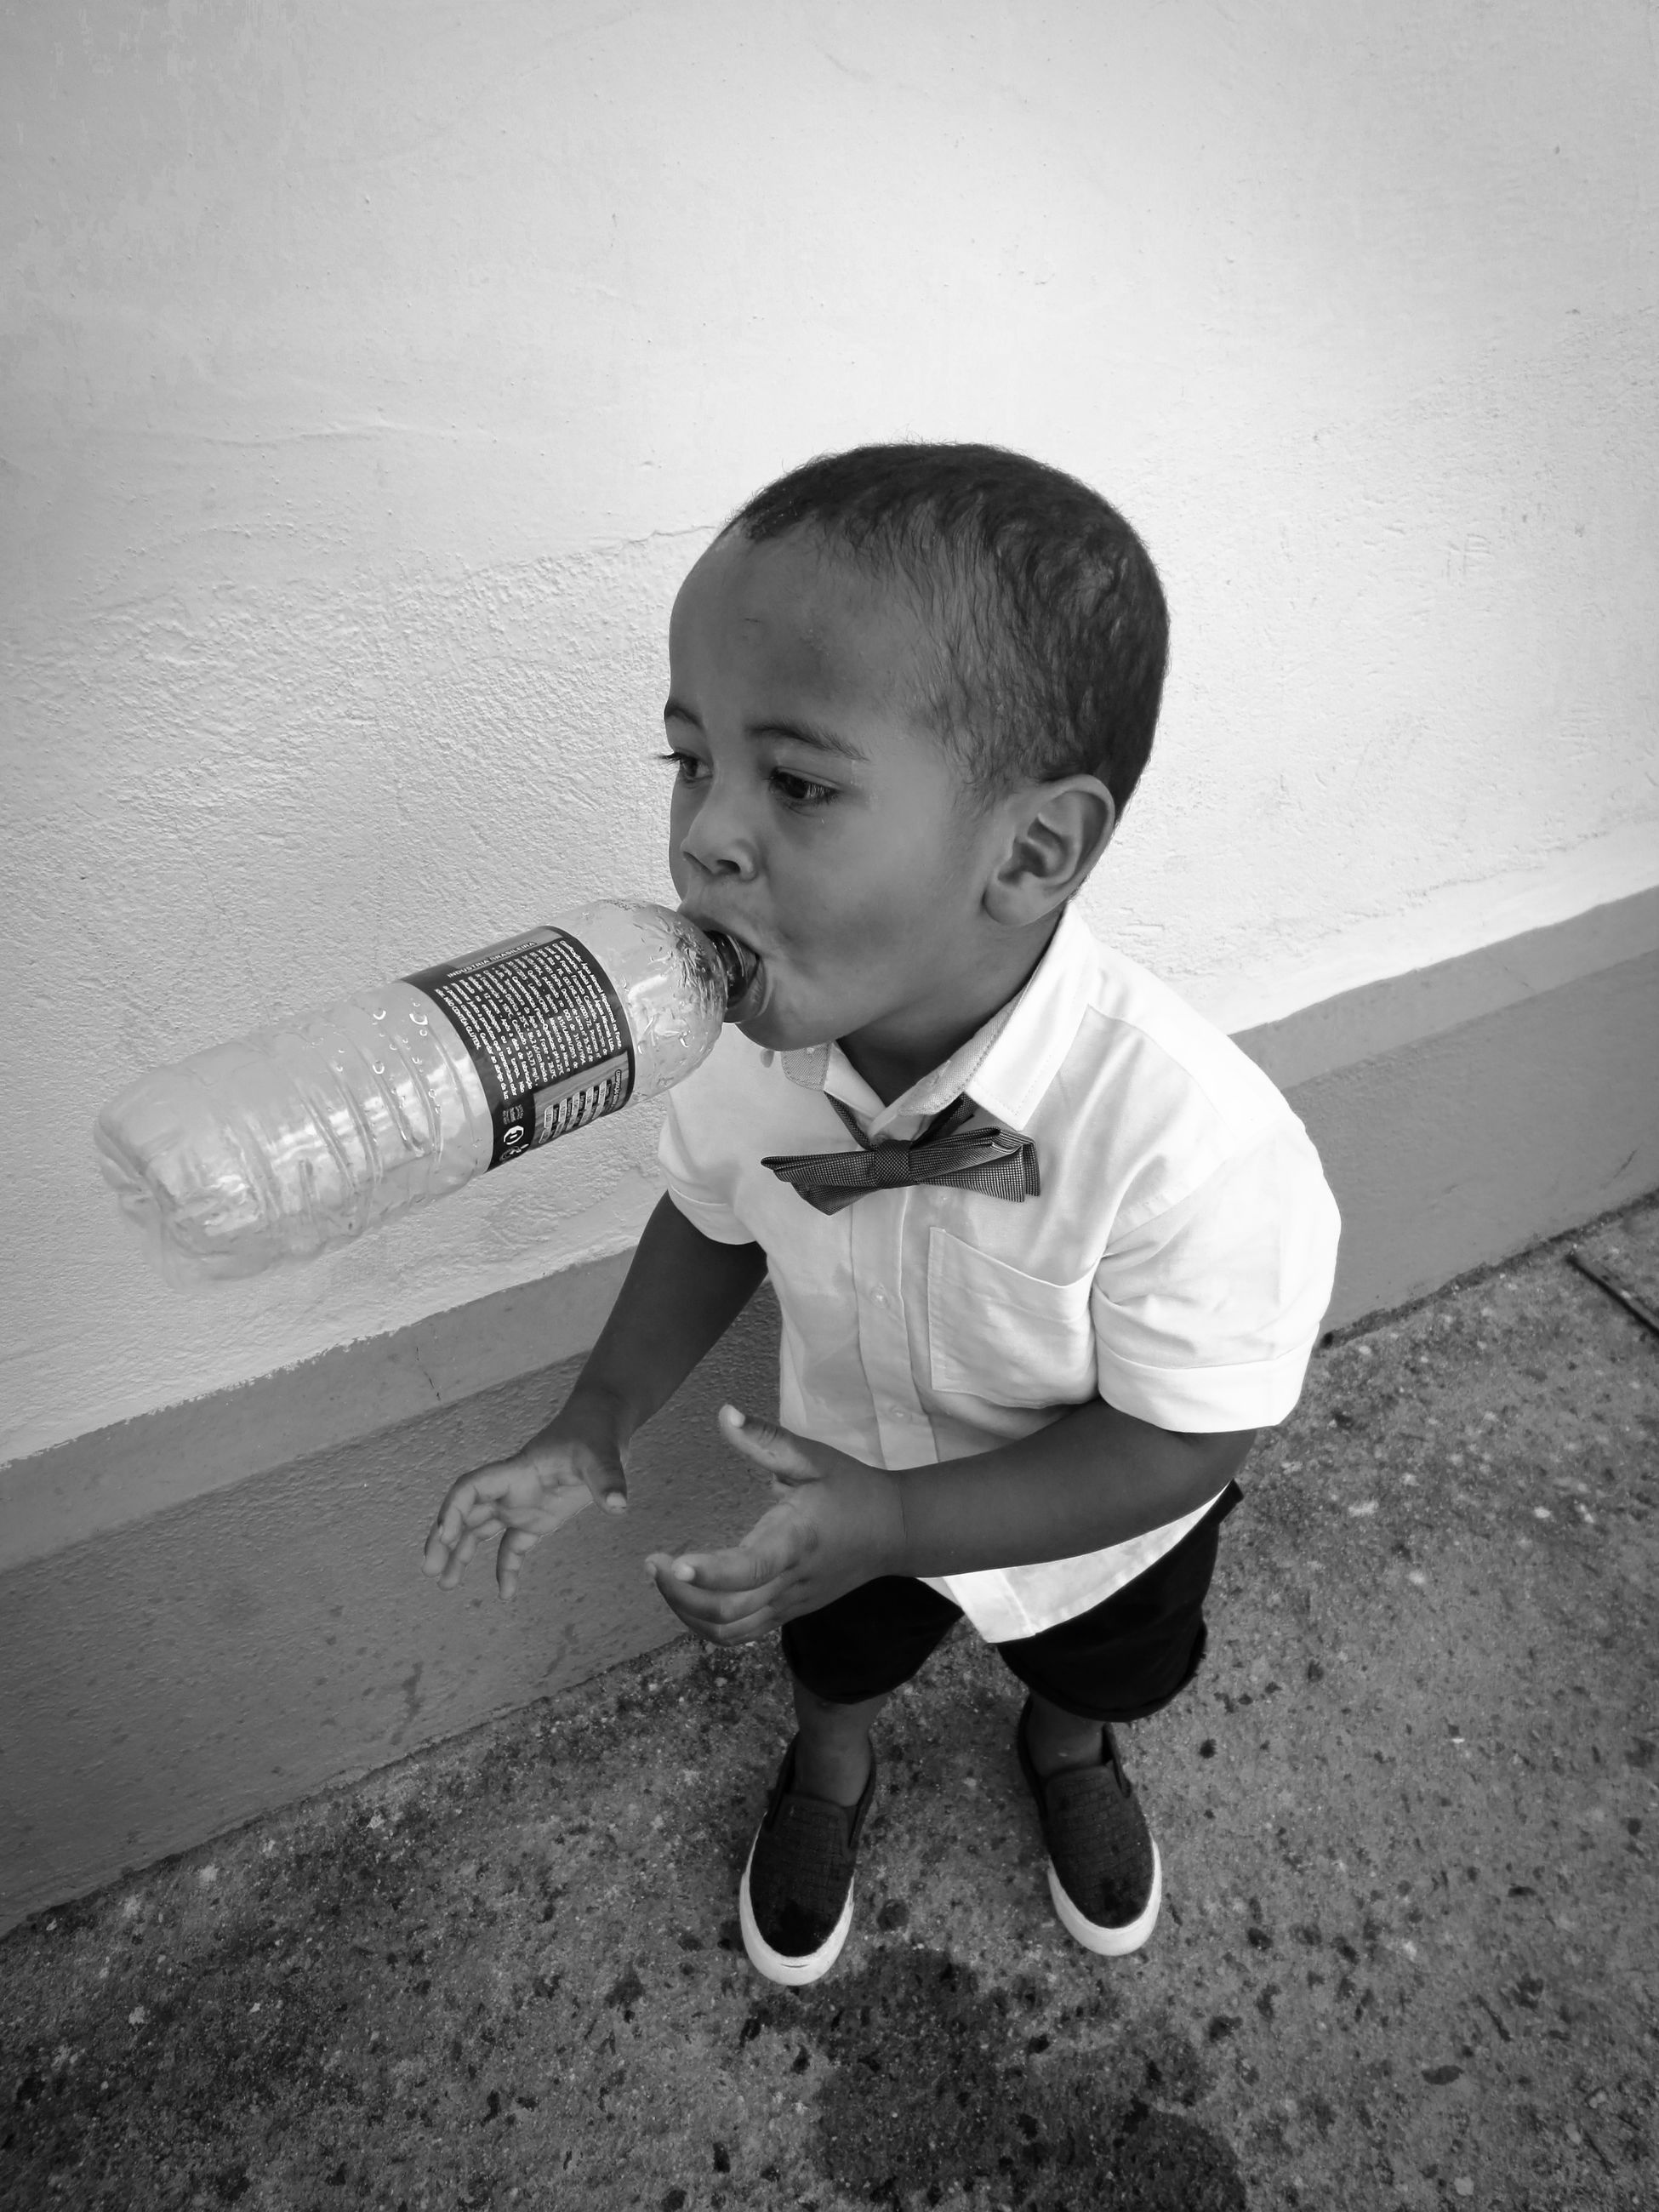 white, black, childhood, child, black and white, one person, monochrome, full length, monochrome photography, baby, men, toddler, cute, innocence, sitting, lifestyles, person, looking, casual clothing, bottle, day, standing, baby clothing